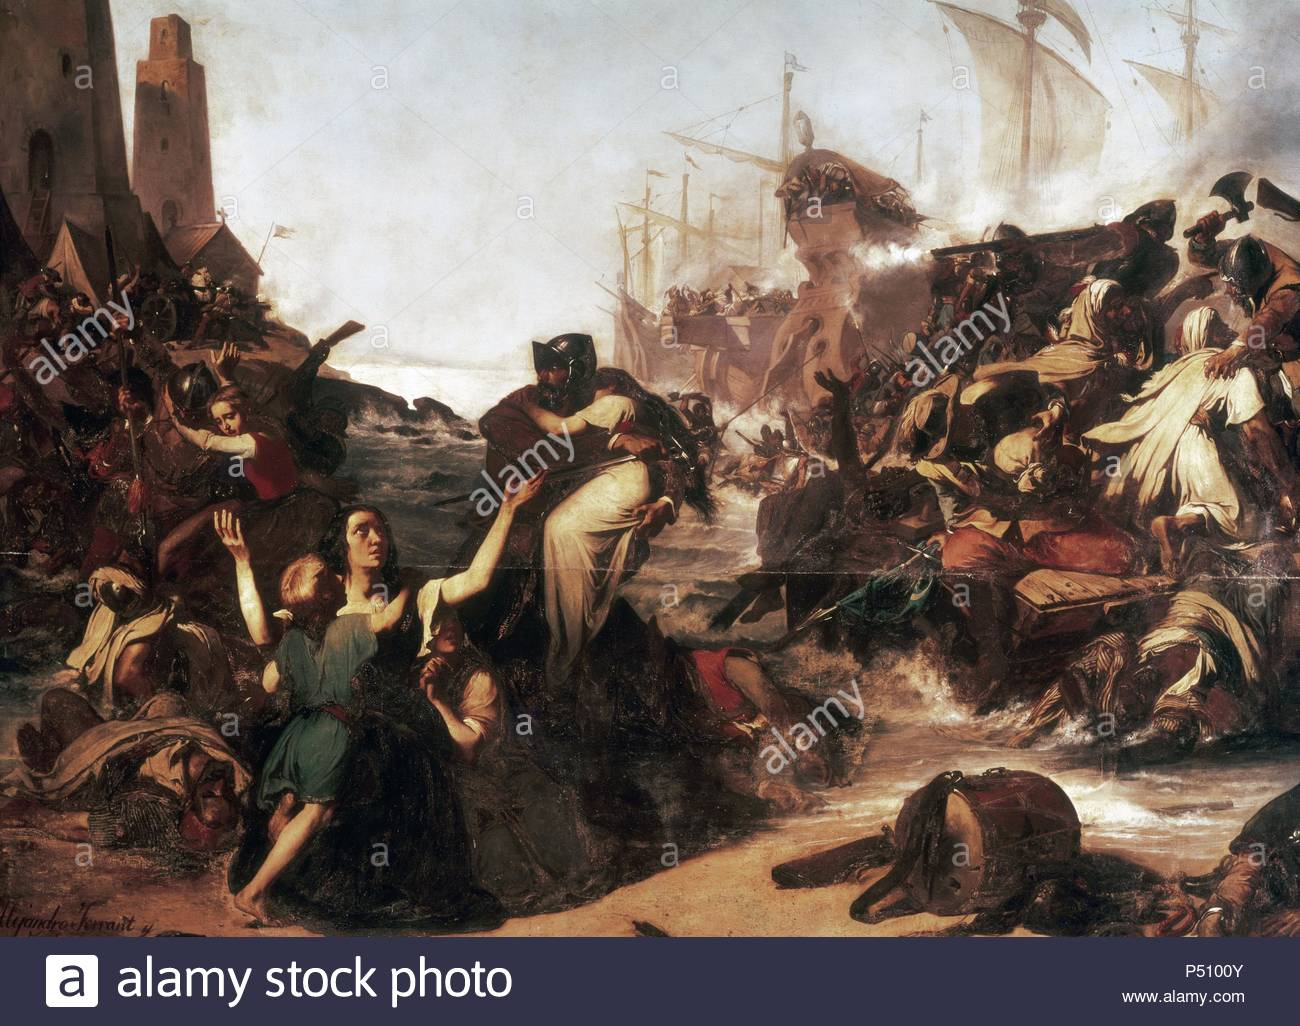 James Woods Decatur >> Barbary Pirate Stock Photos & Barbary Pirate Stock Images - Alamy